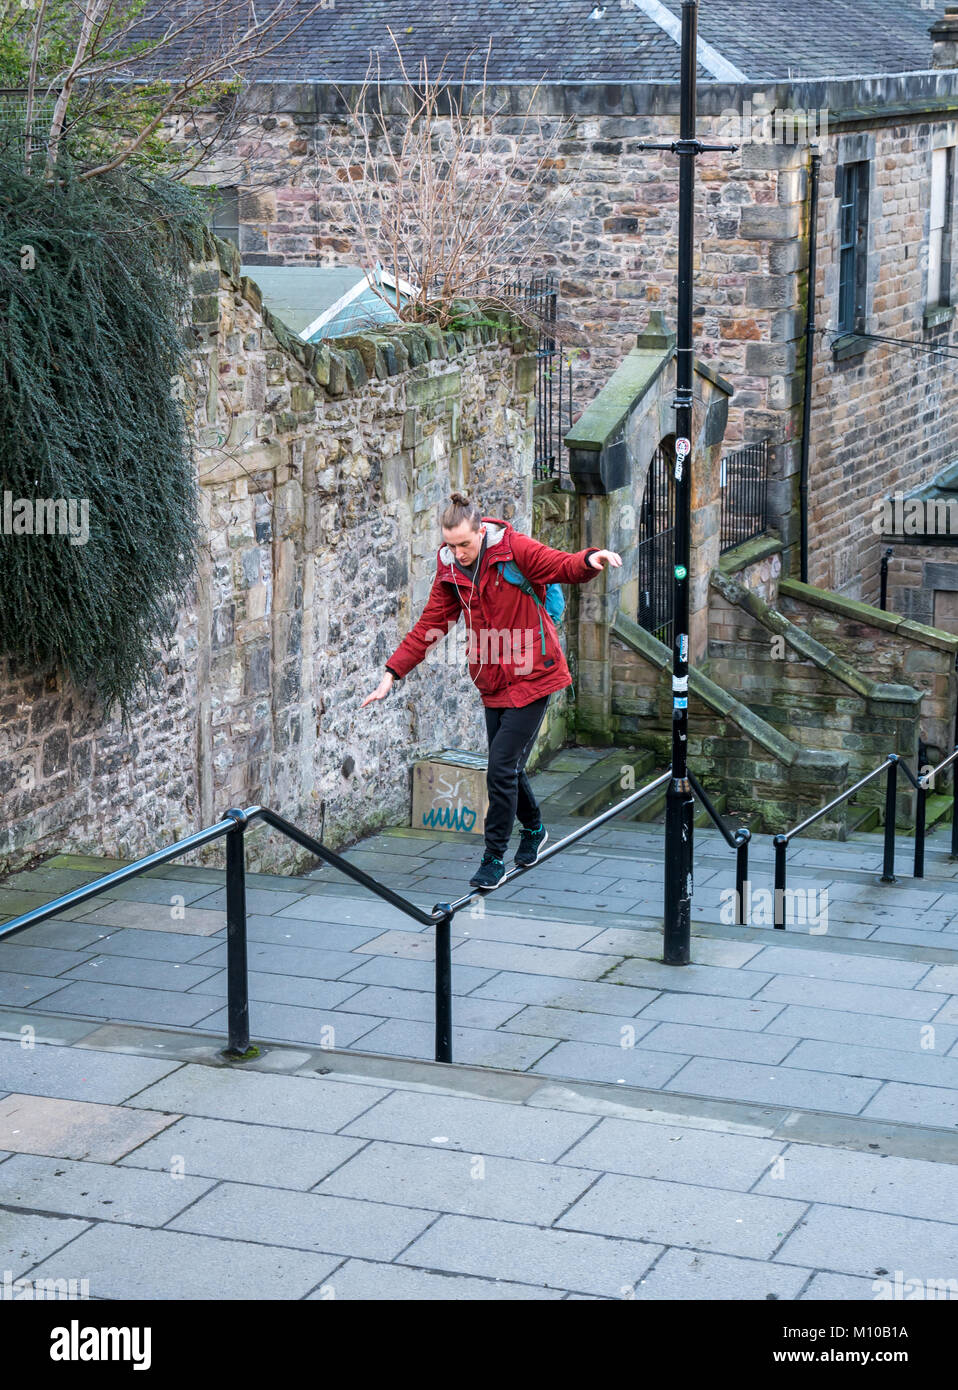 Vennel, Grassmarket, Old Town, Edinburgh, Scotland, United Kingdom, 24th January 2018. Young man practising balancing Stock Photo